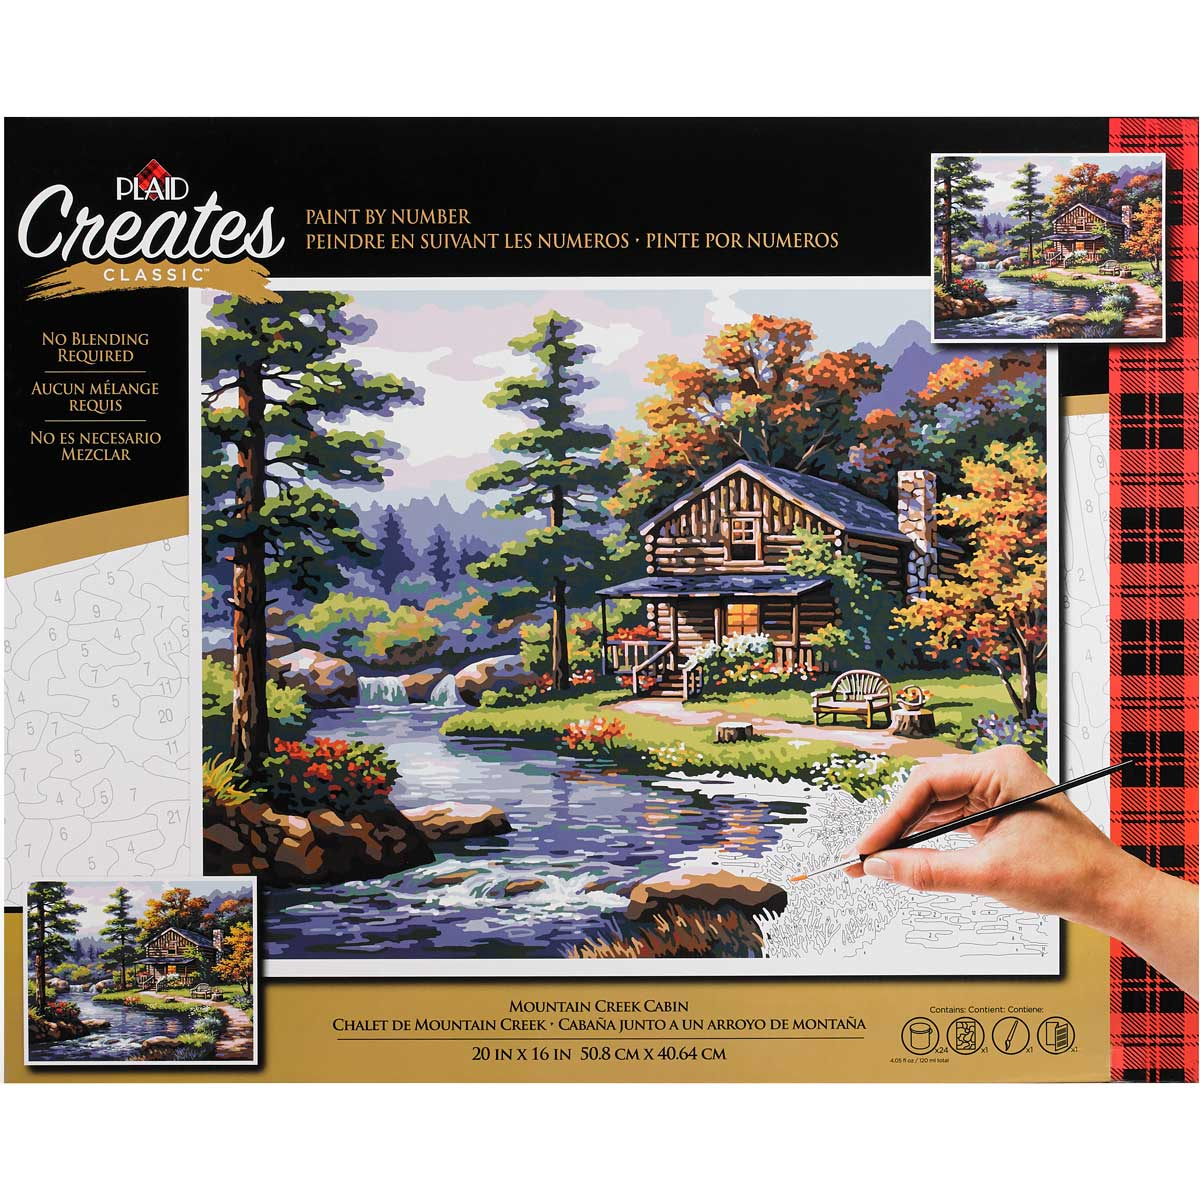 Plaid ® Paint by Number - Mountain Creek Cabin